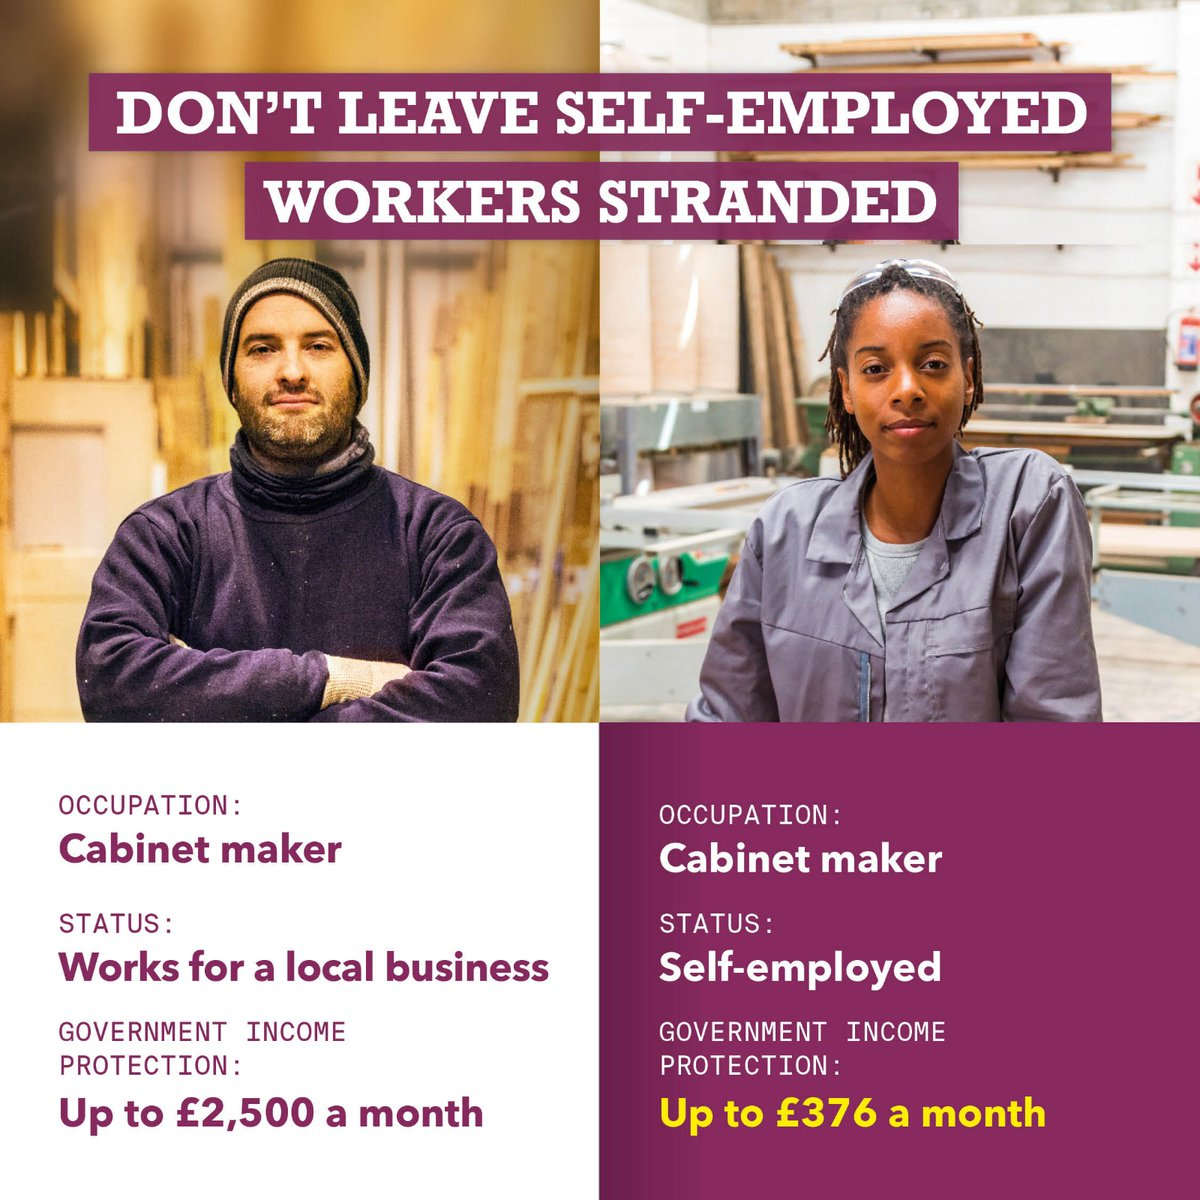 All workers – both employed and self-employed – should have their wages protected.